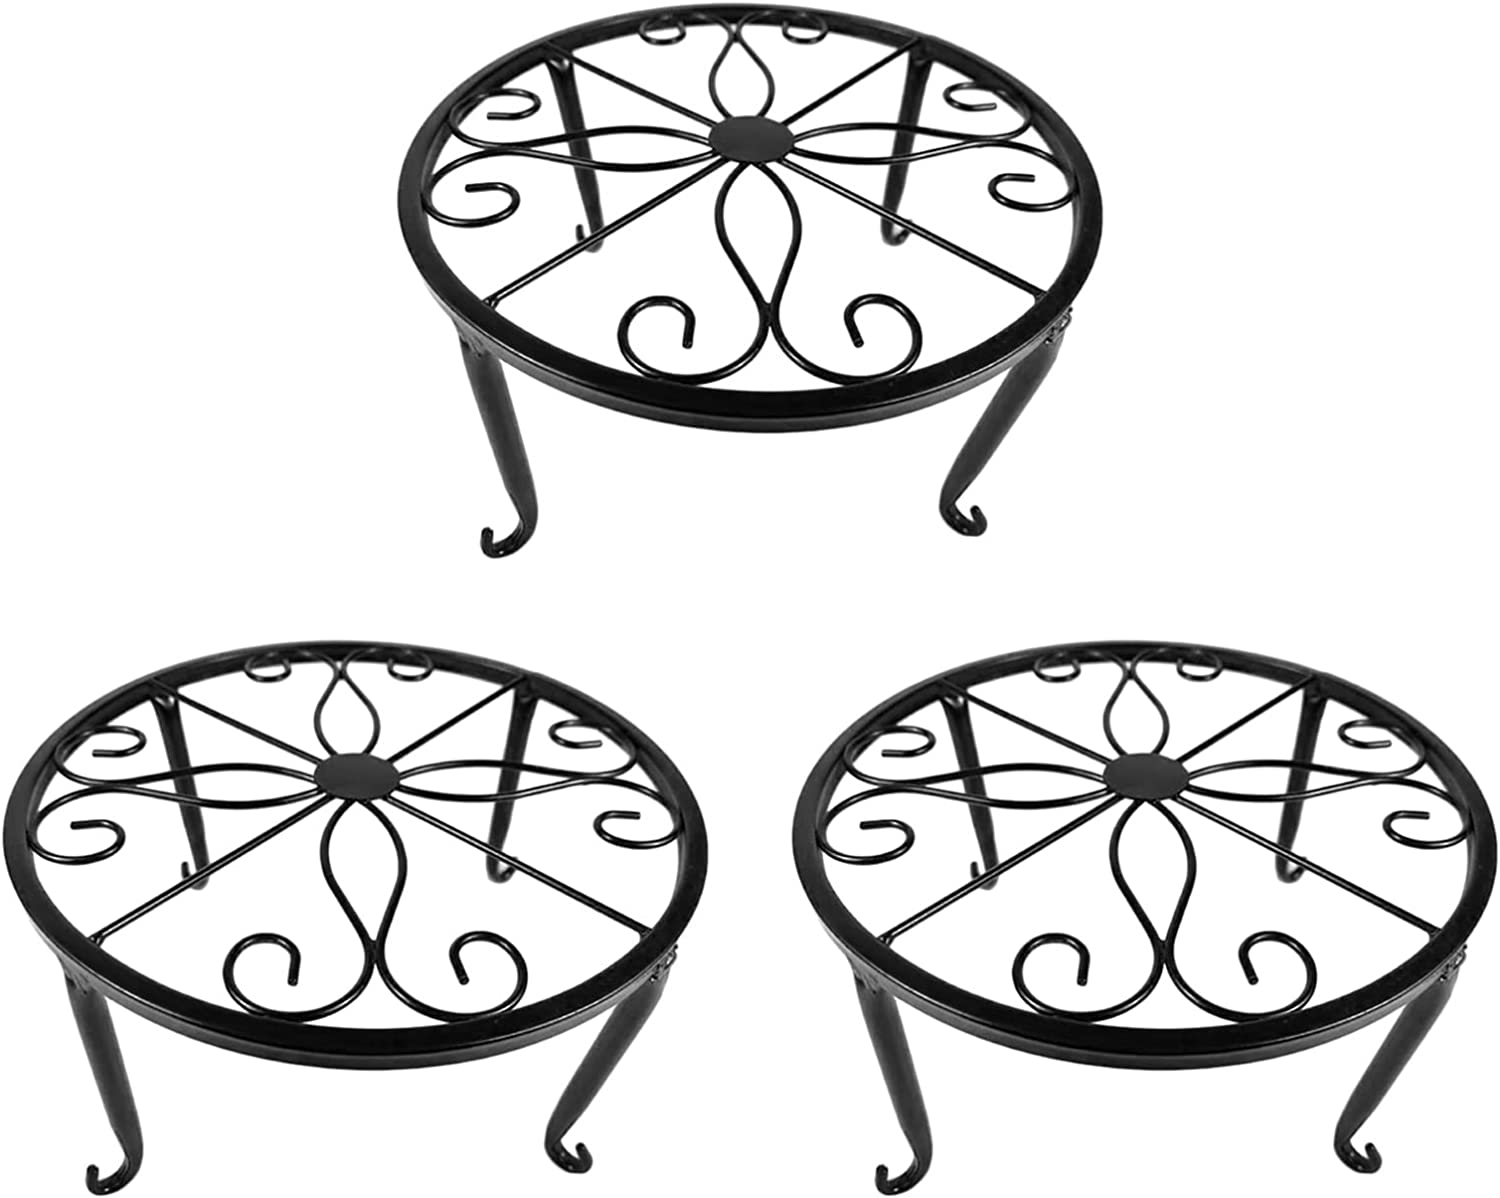 EESLL 3 Pack Metal Plant Stand Fl Iron Outdoor Ranking TOP13 Phoenix Mall Art Indoor Round